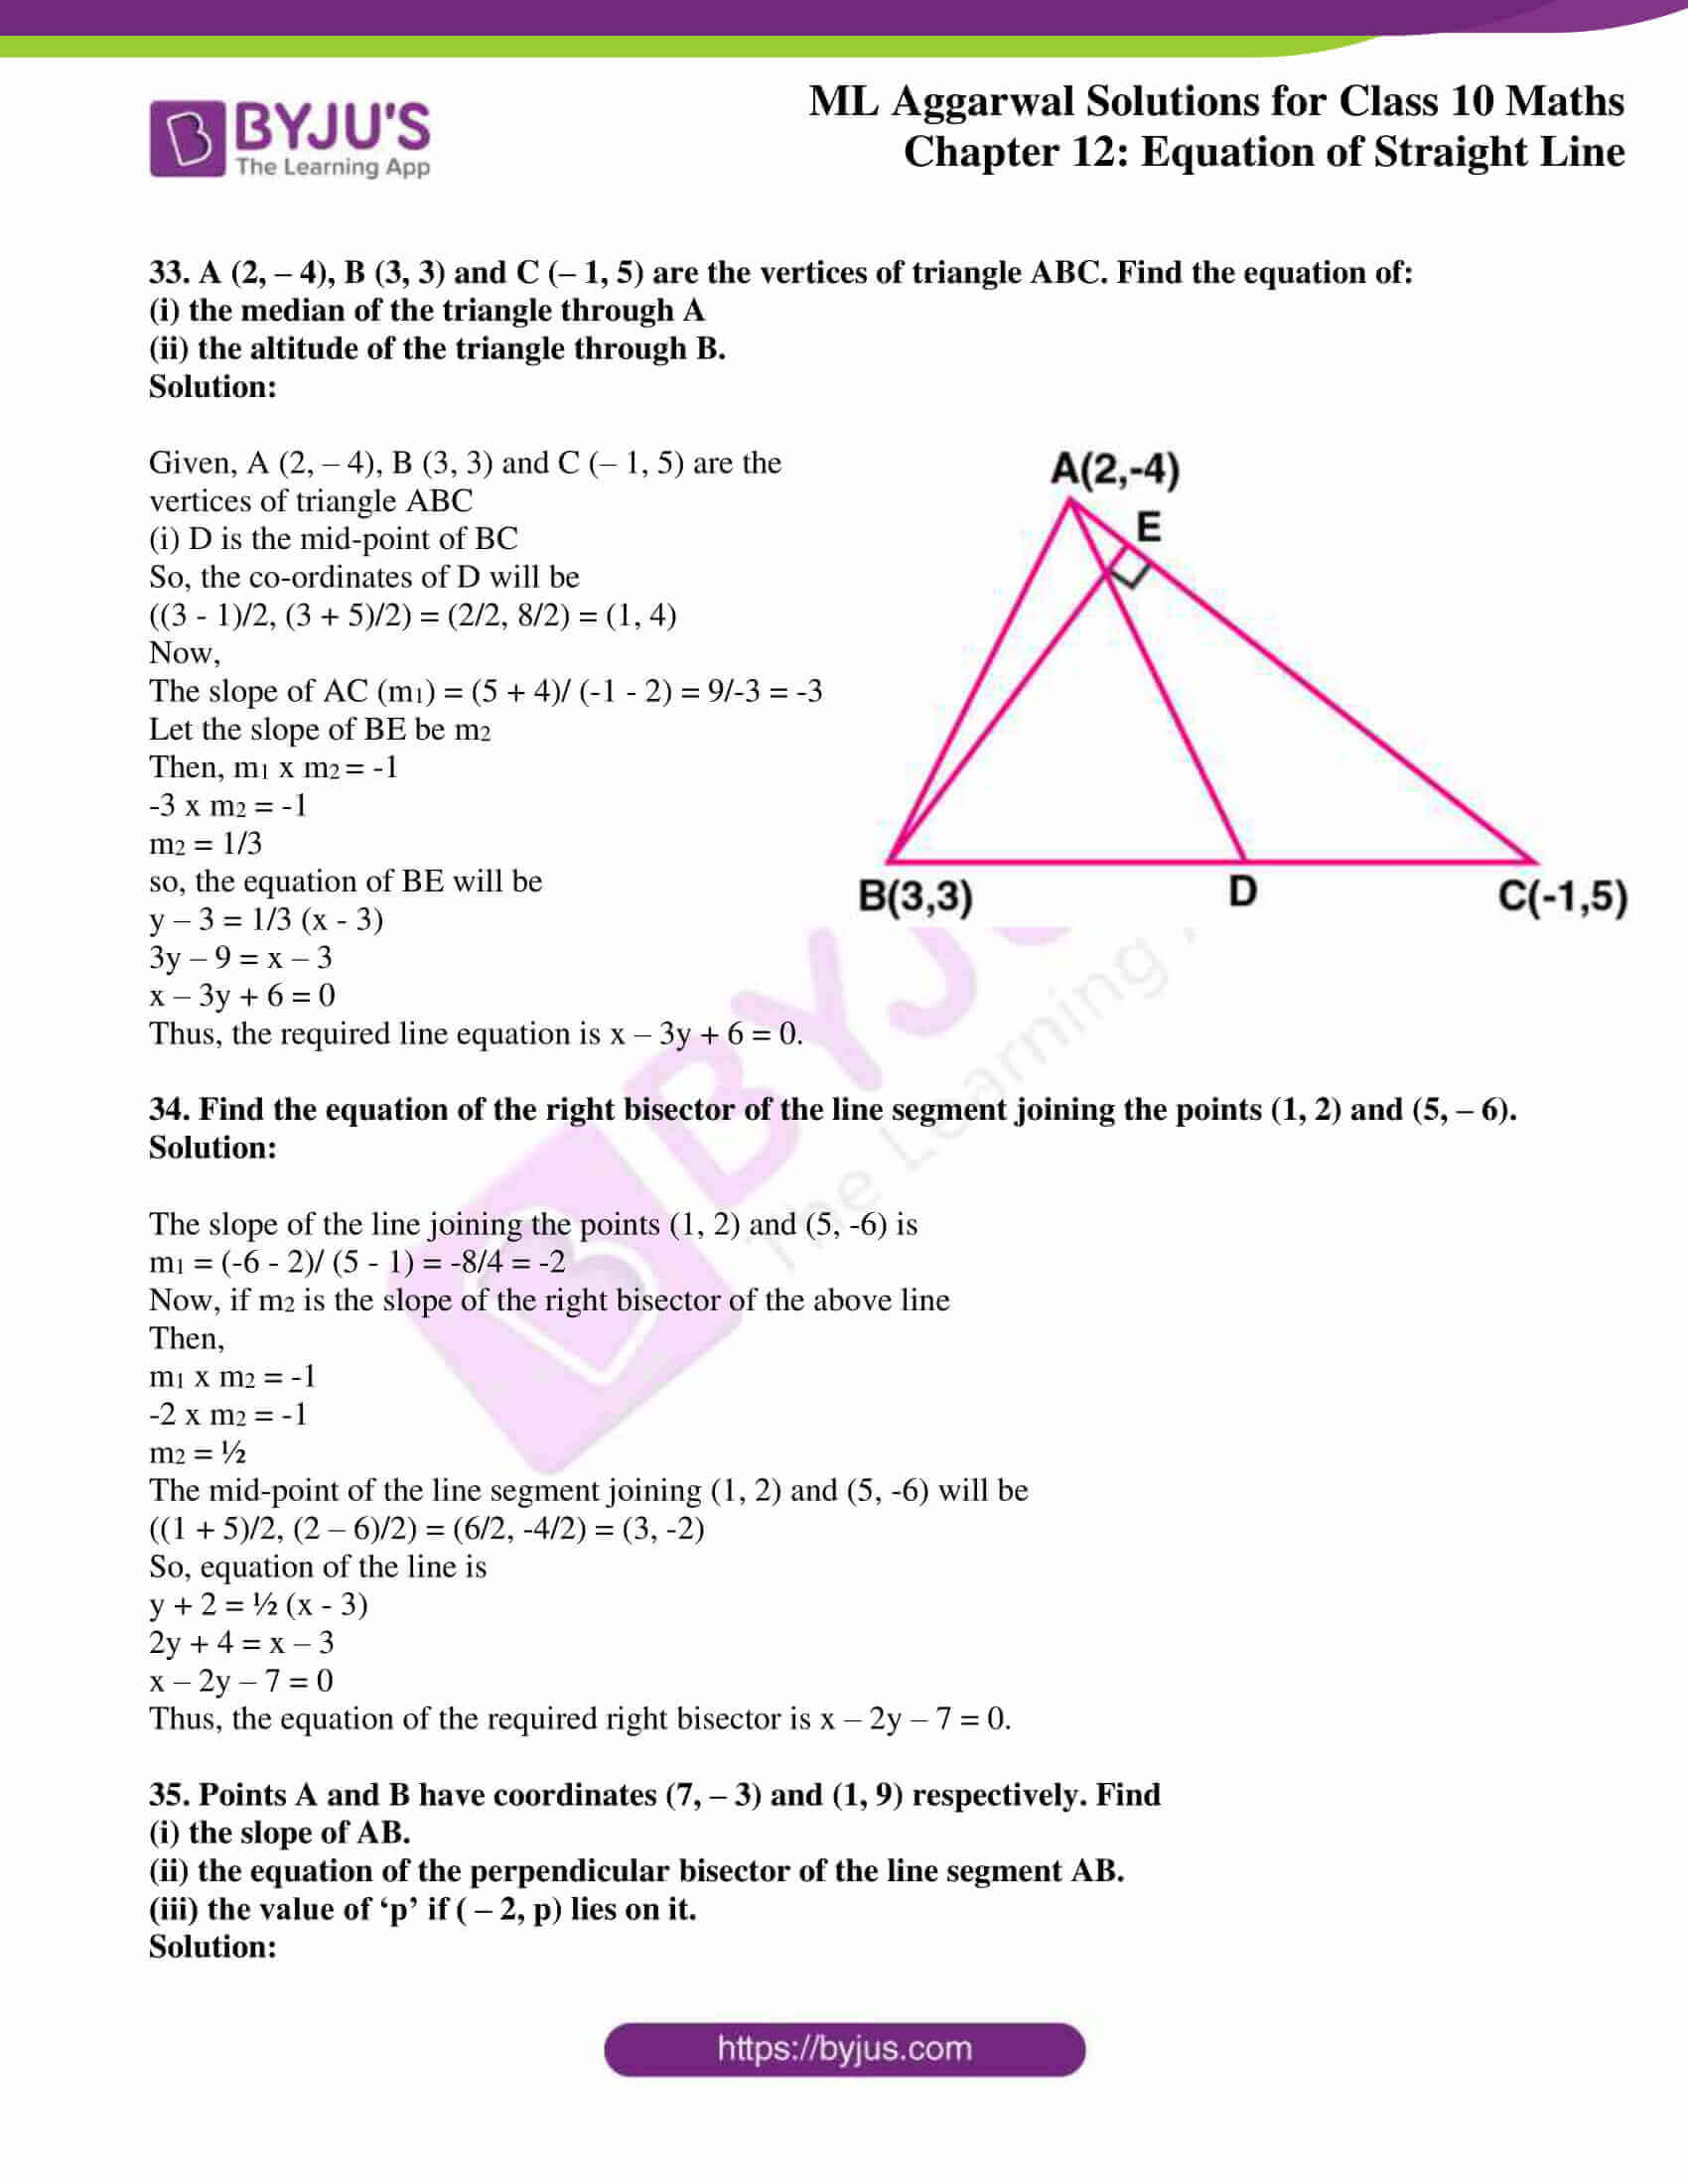 ml aggarwal solutions for class 10 maths chapter 12 29